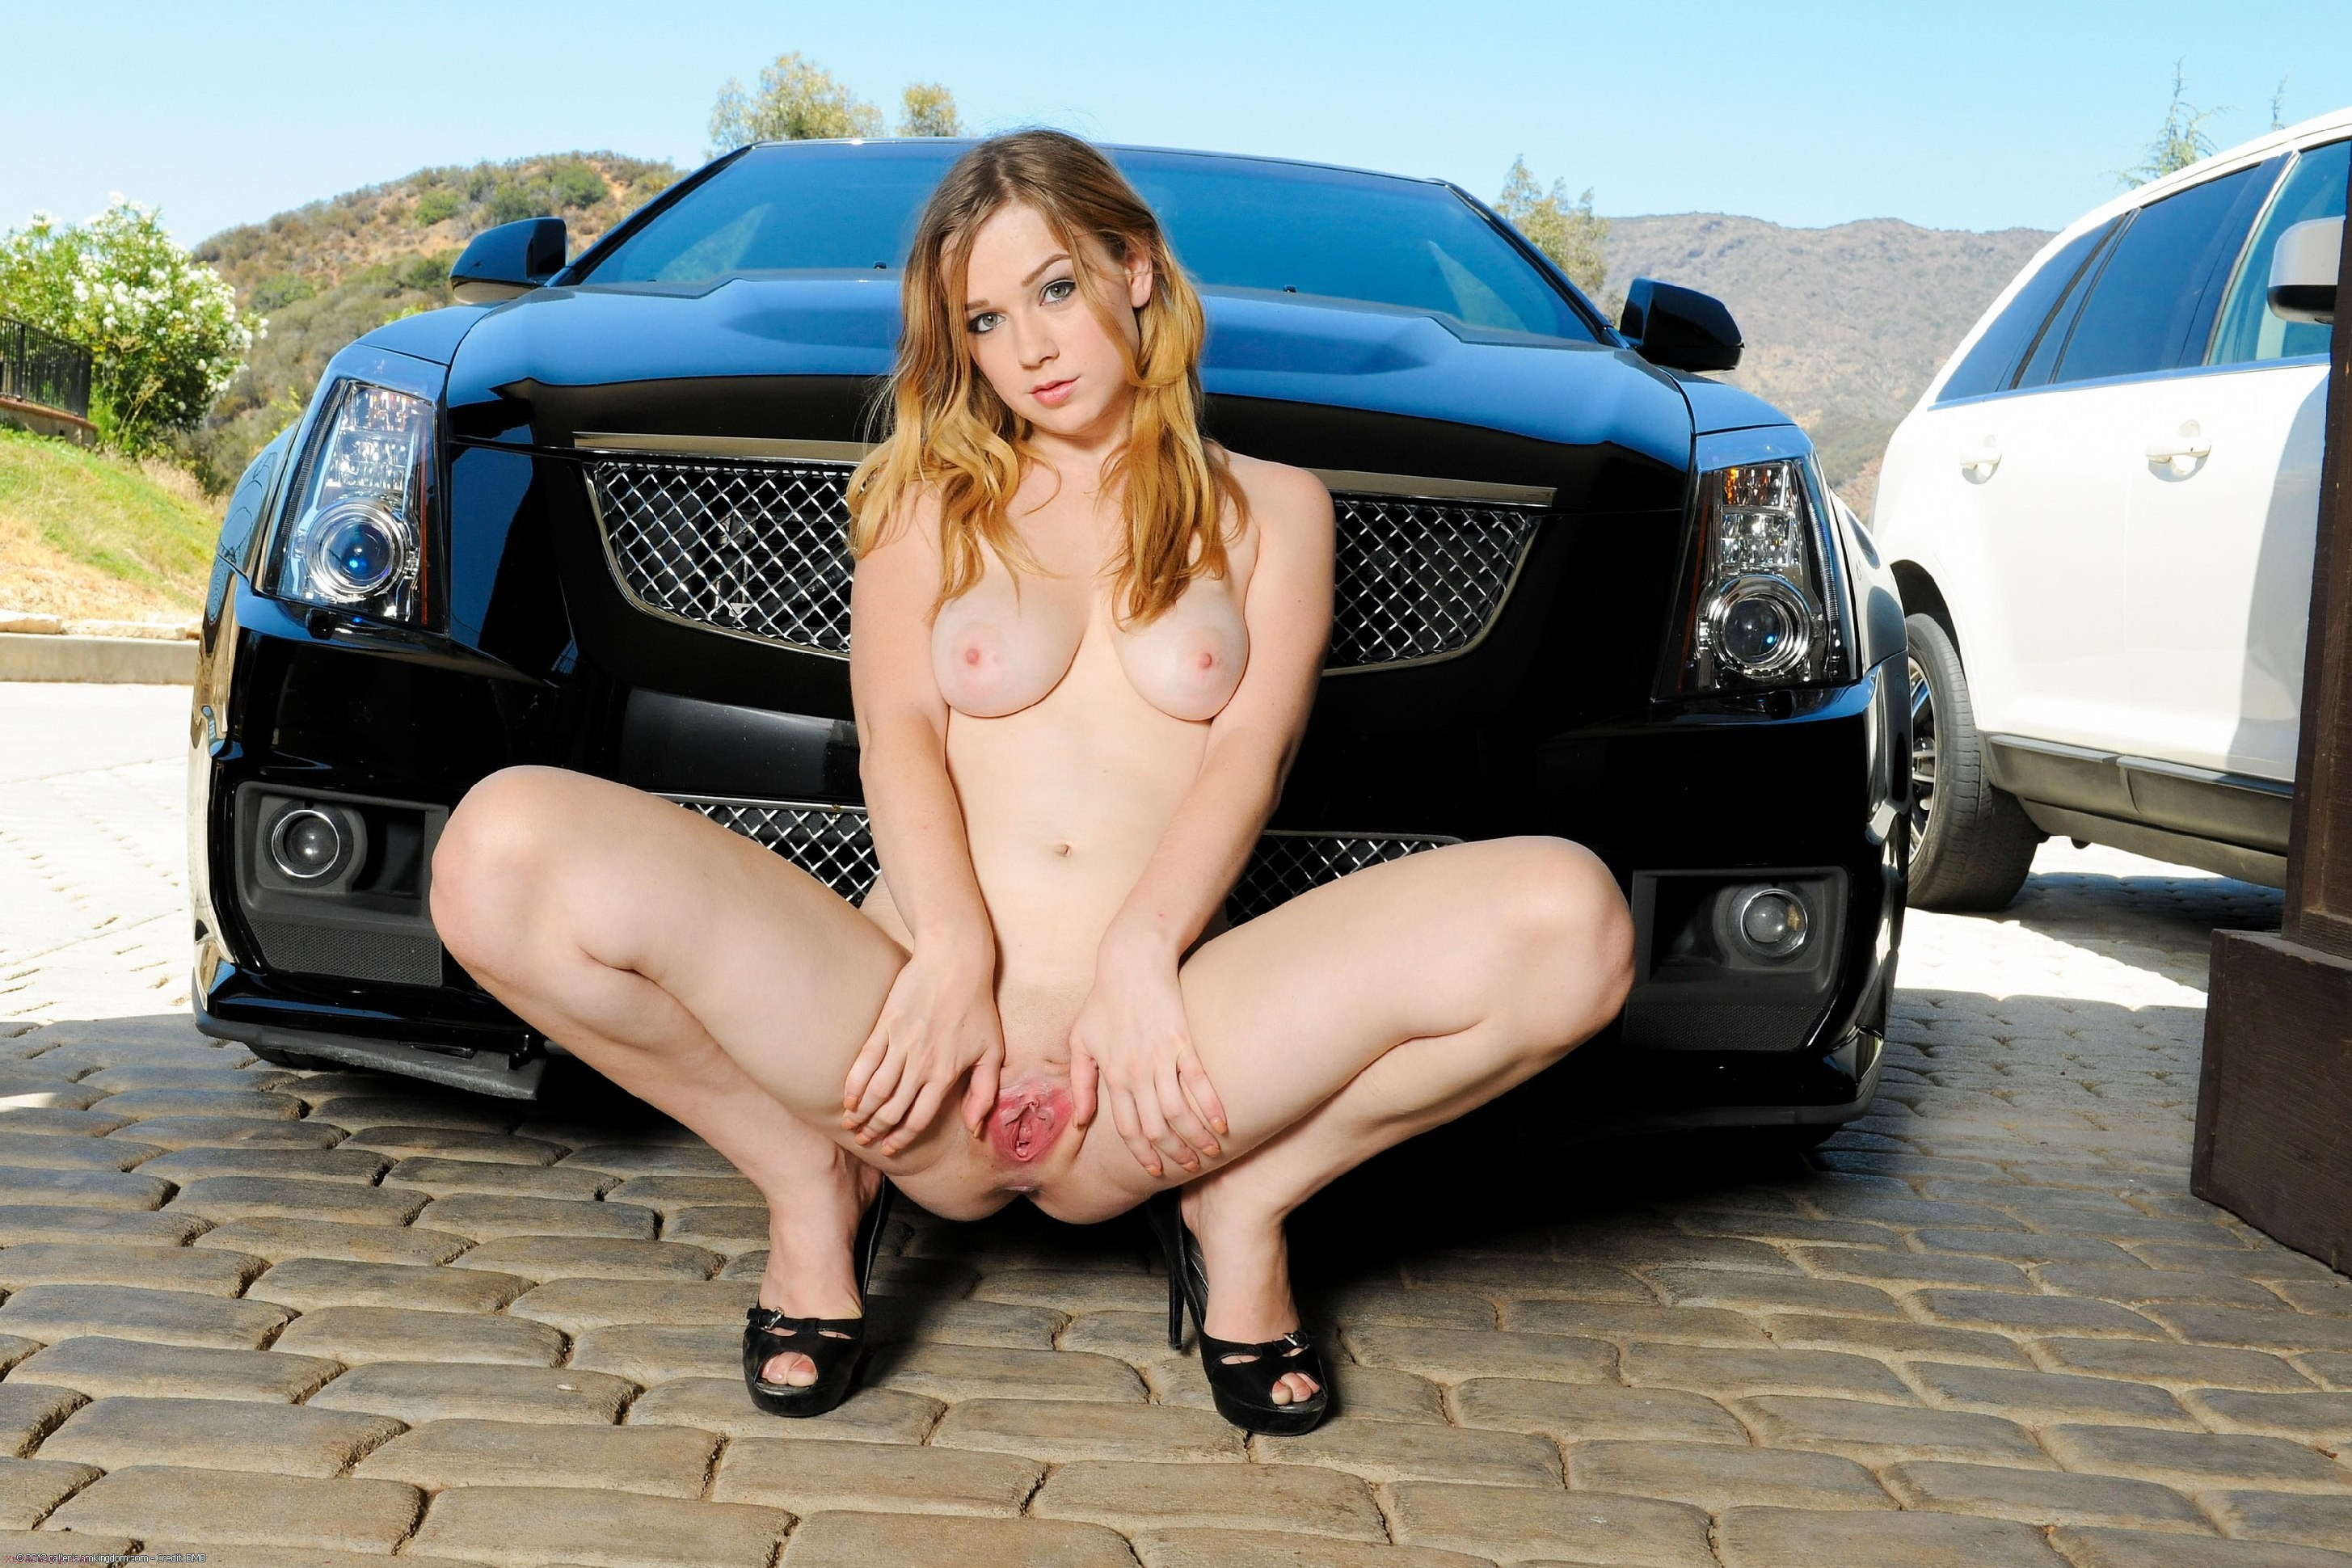 Naked with car girl